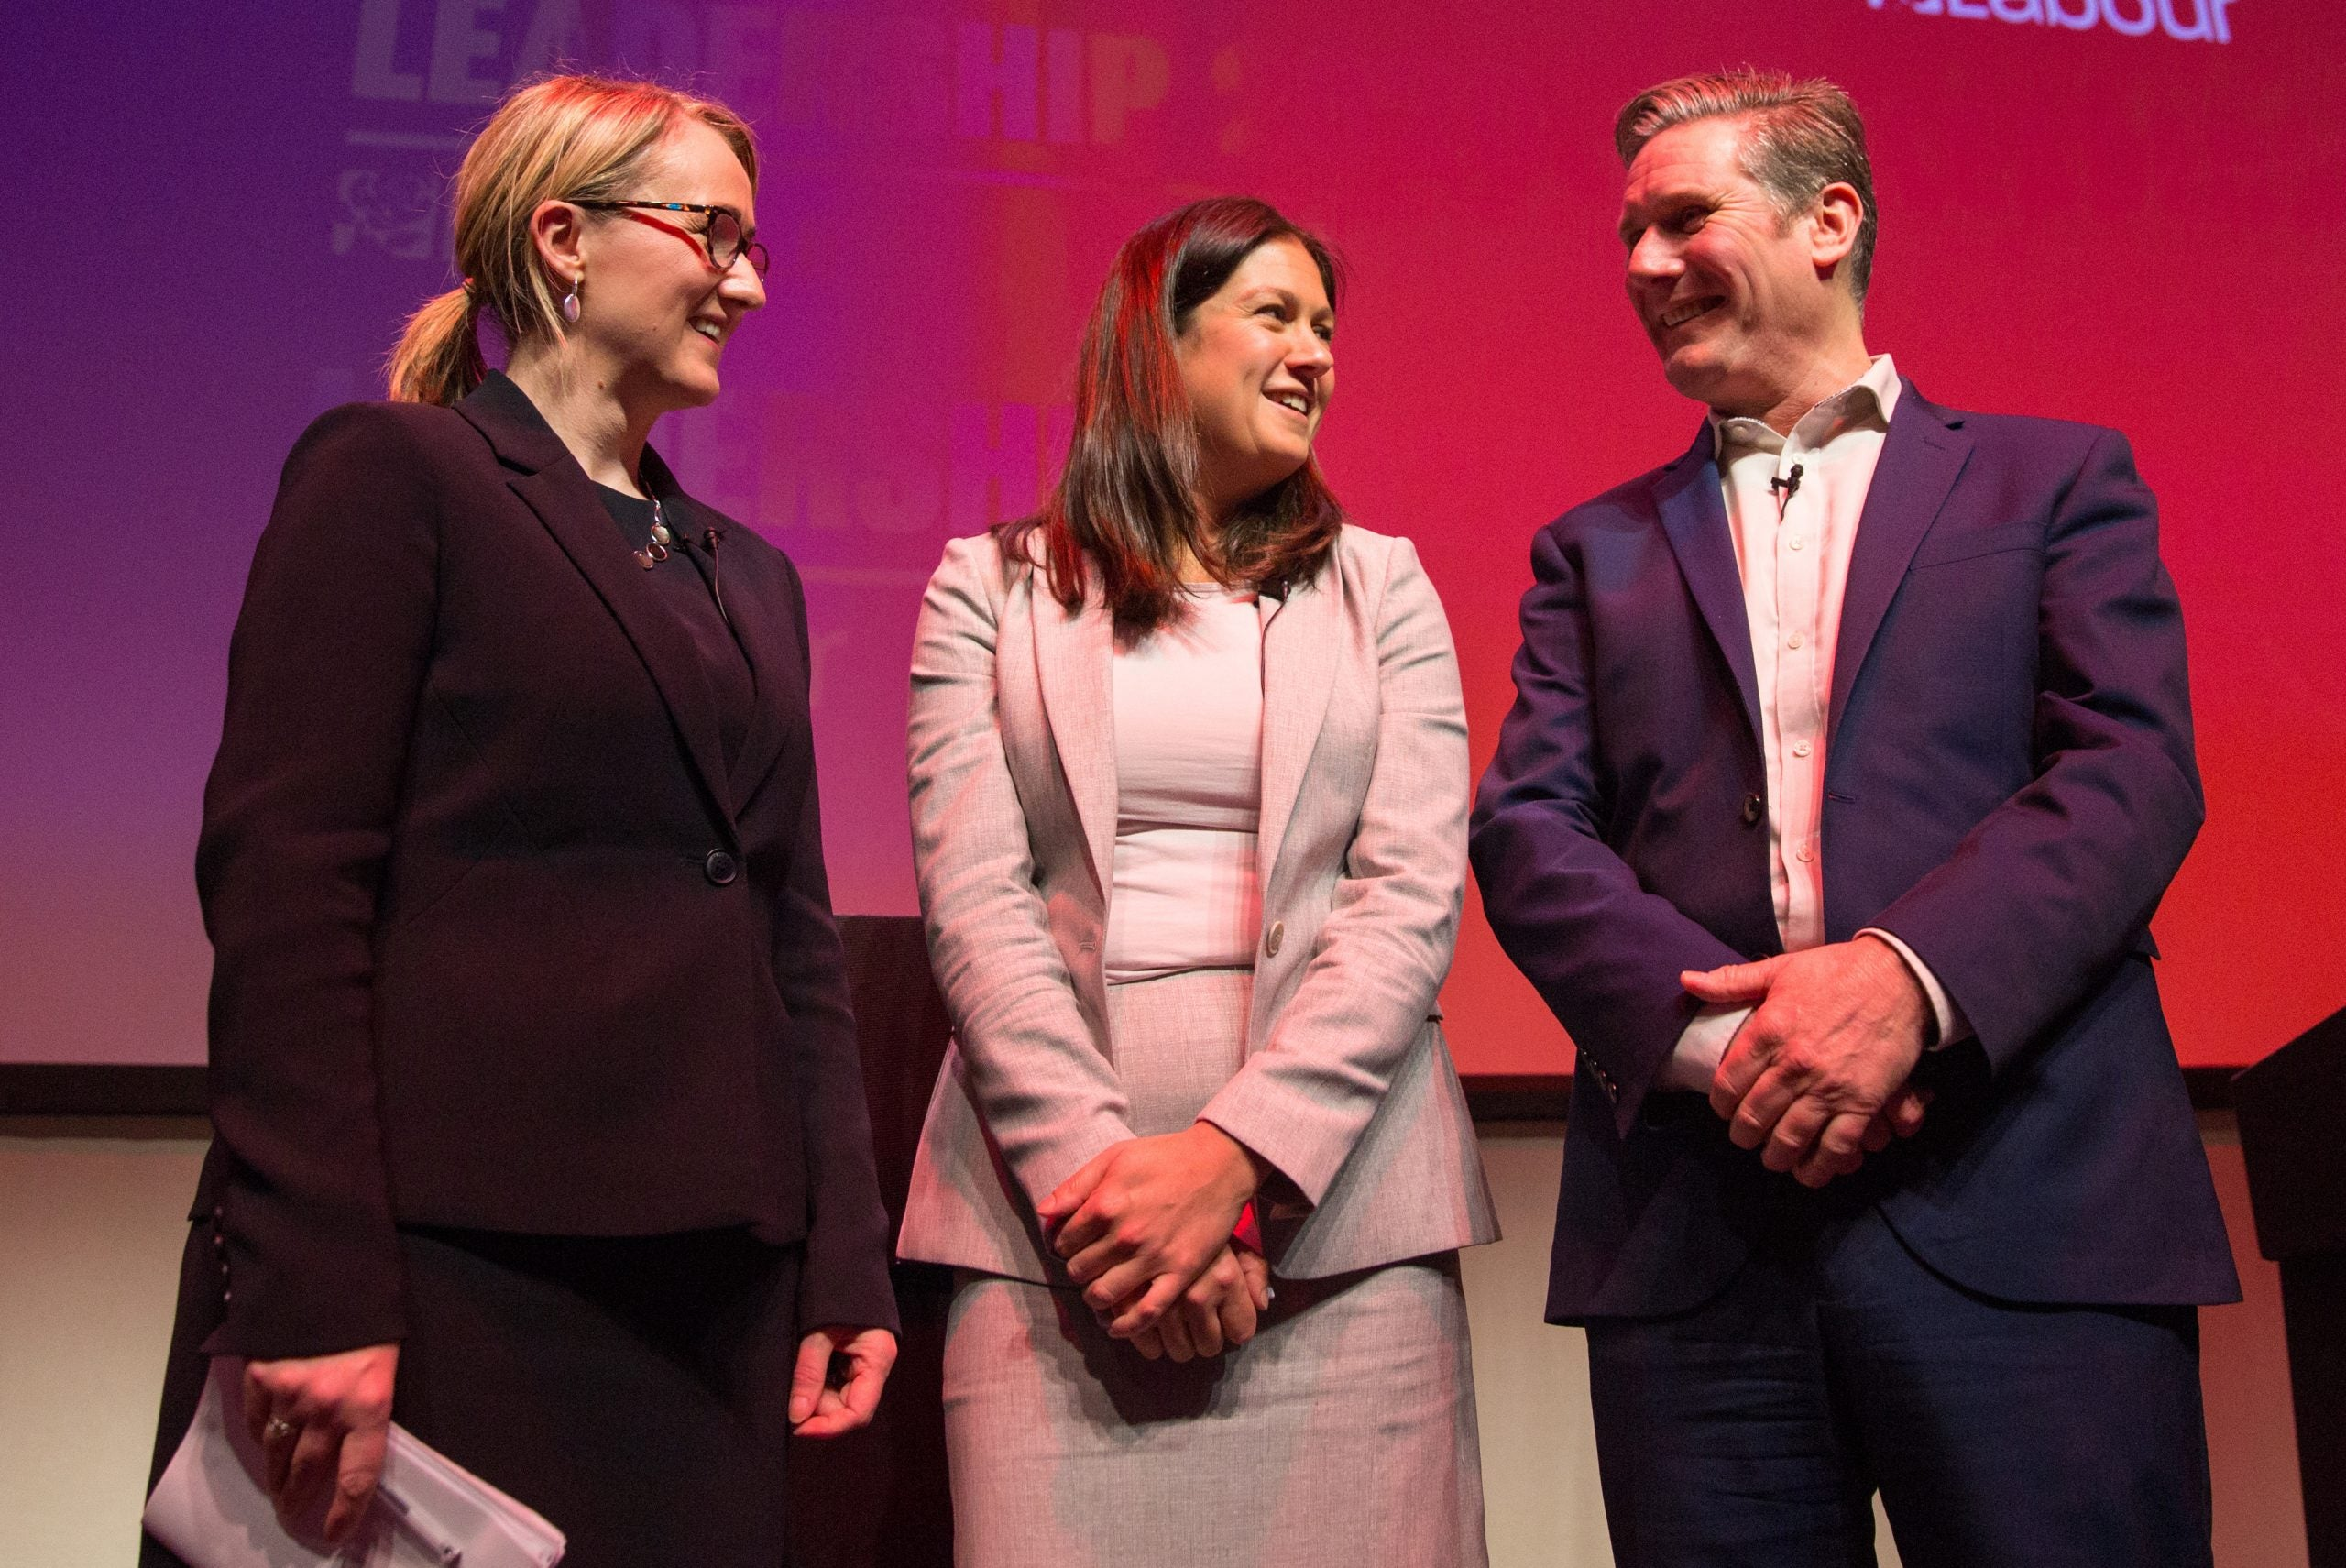 Labour must unite if it is to form an effective opposition